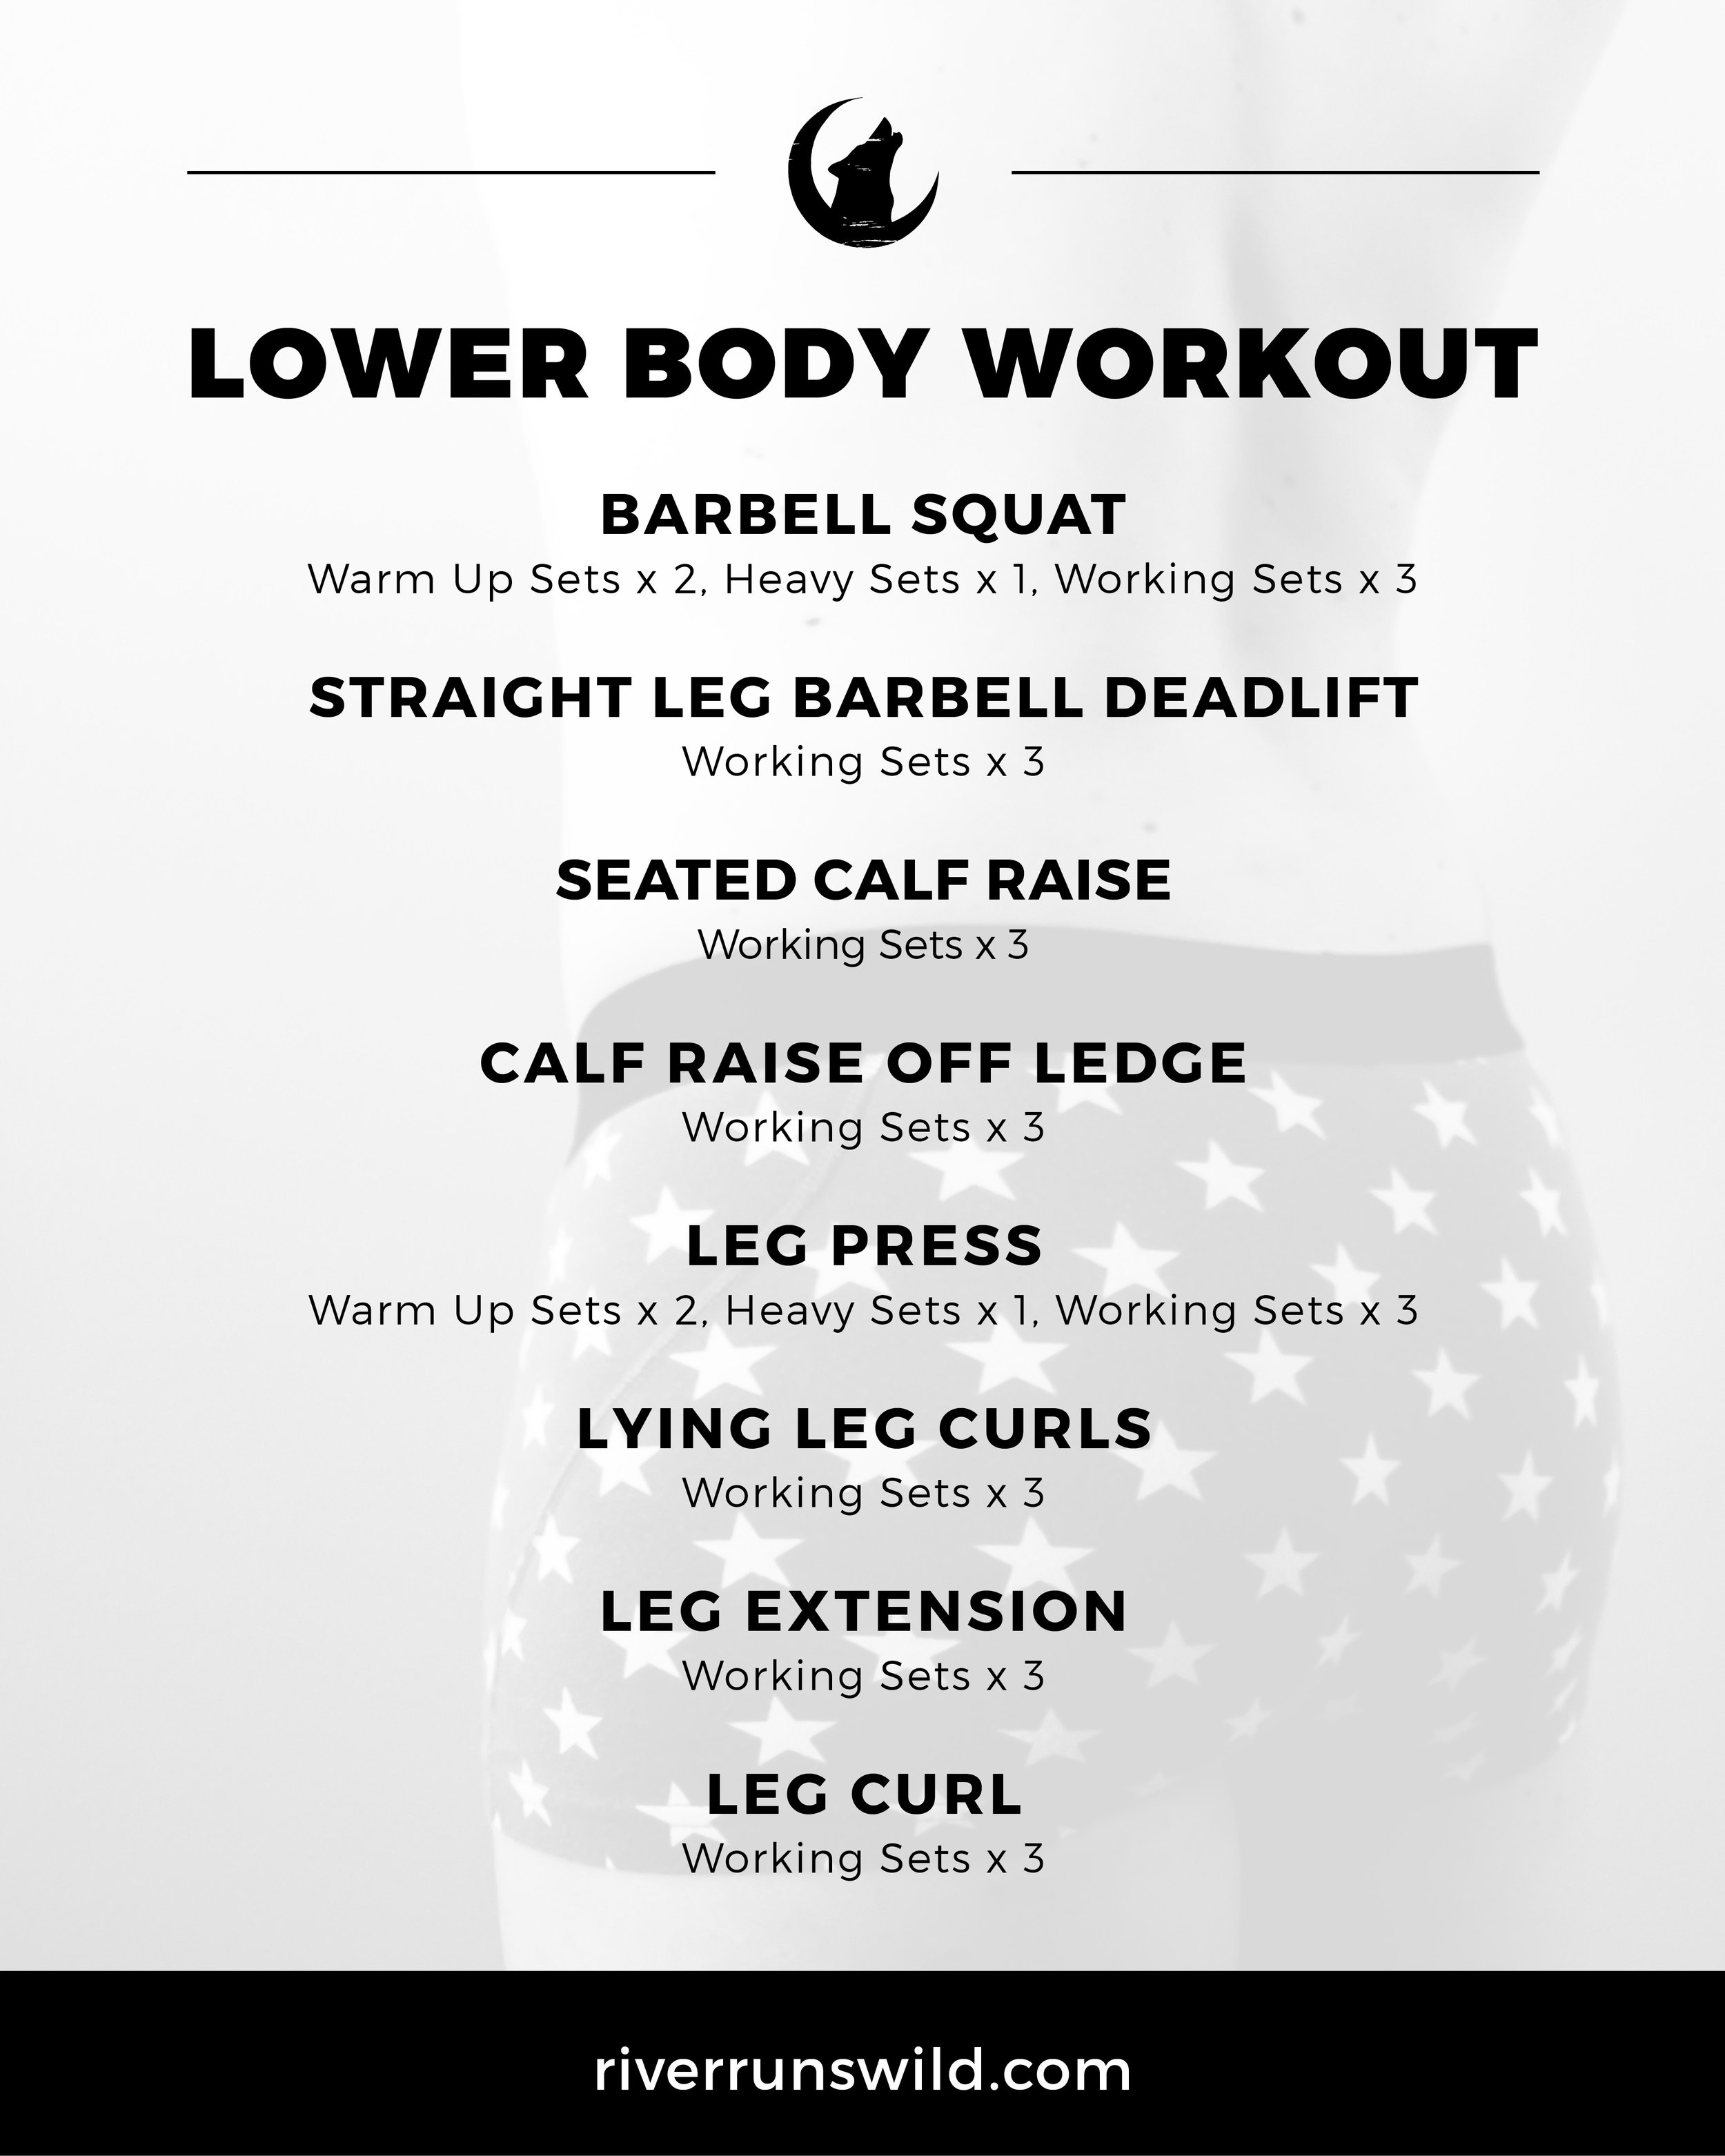 Feel free to download and share this workout!